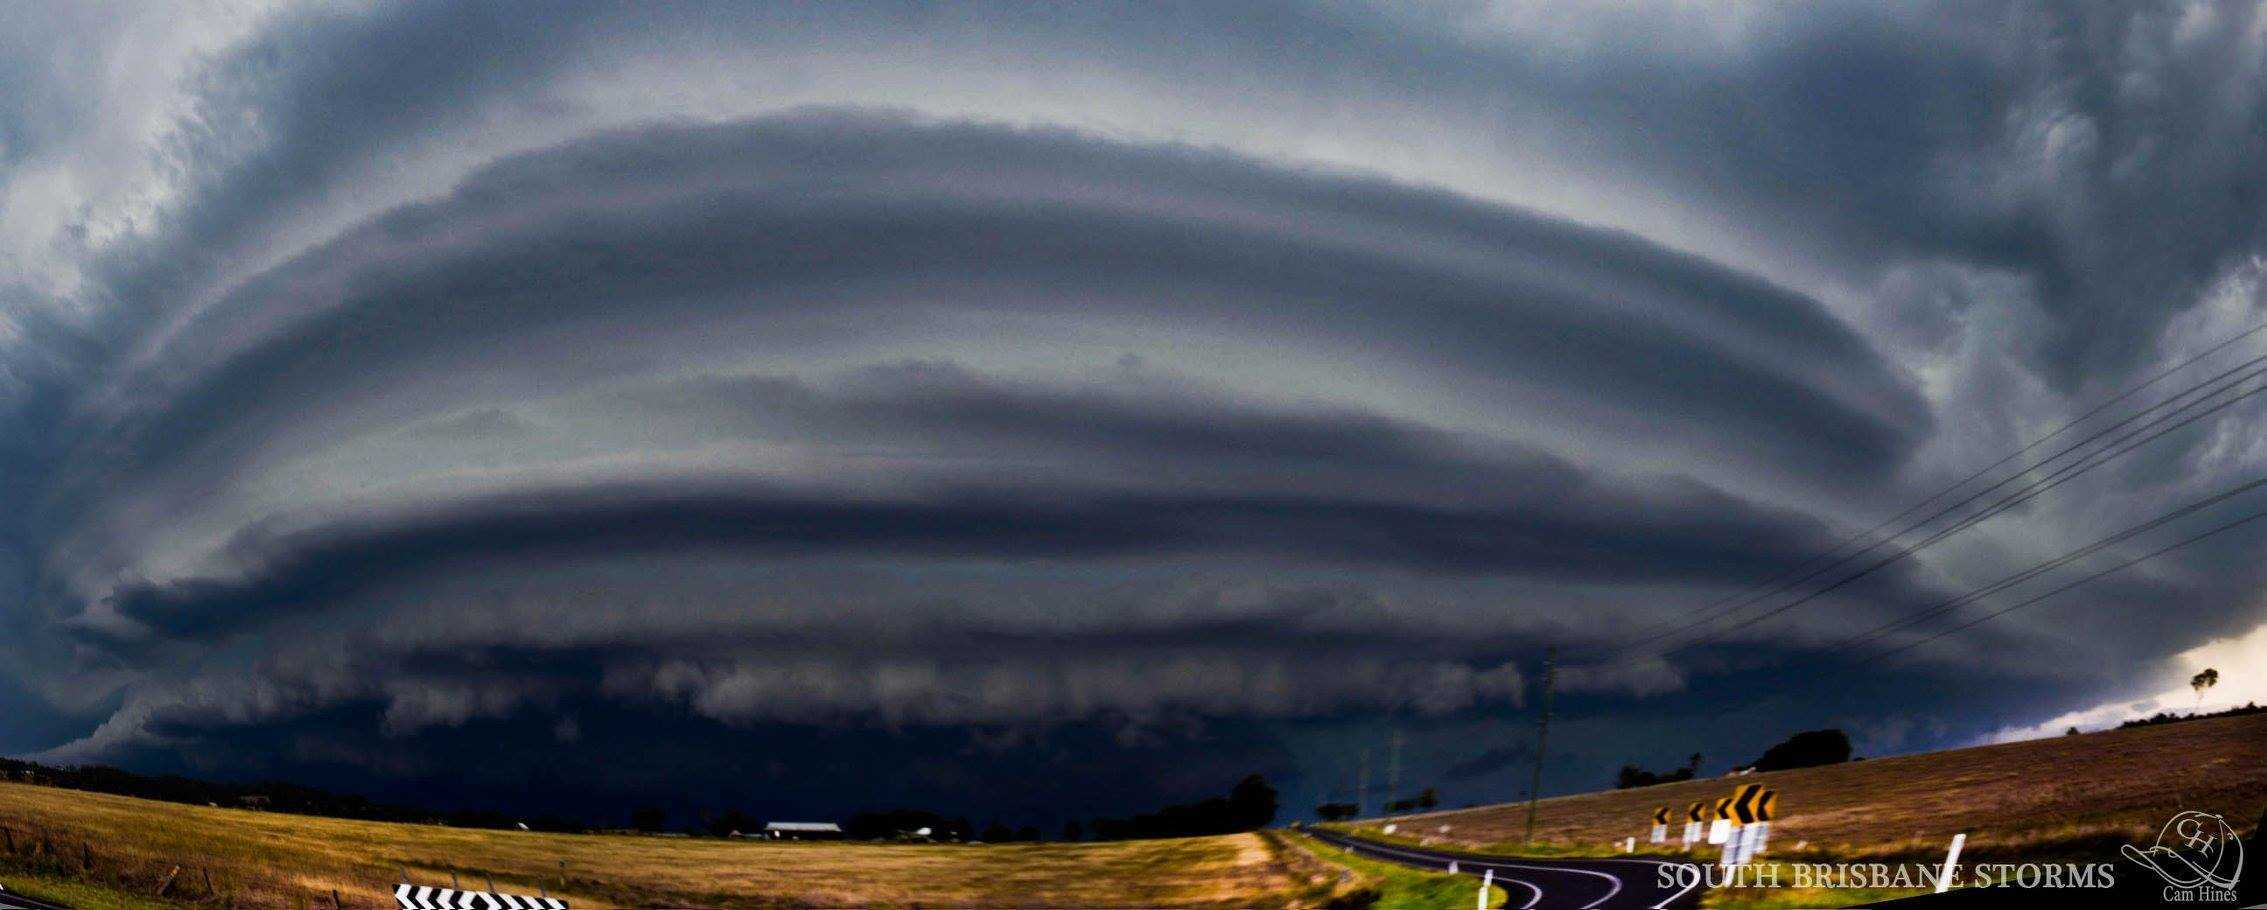 One of my favourite days from this last storm season in Southeast QLD Australia. A layered HP supercell in a town called Harrisville on December 3 last year. This photo is 8 vertical photos stitched together into a pano.